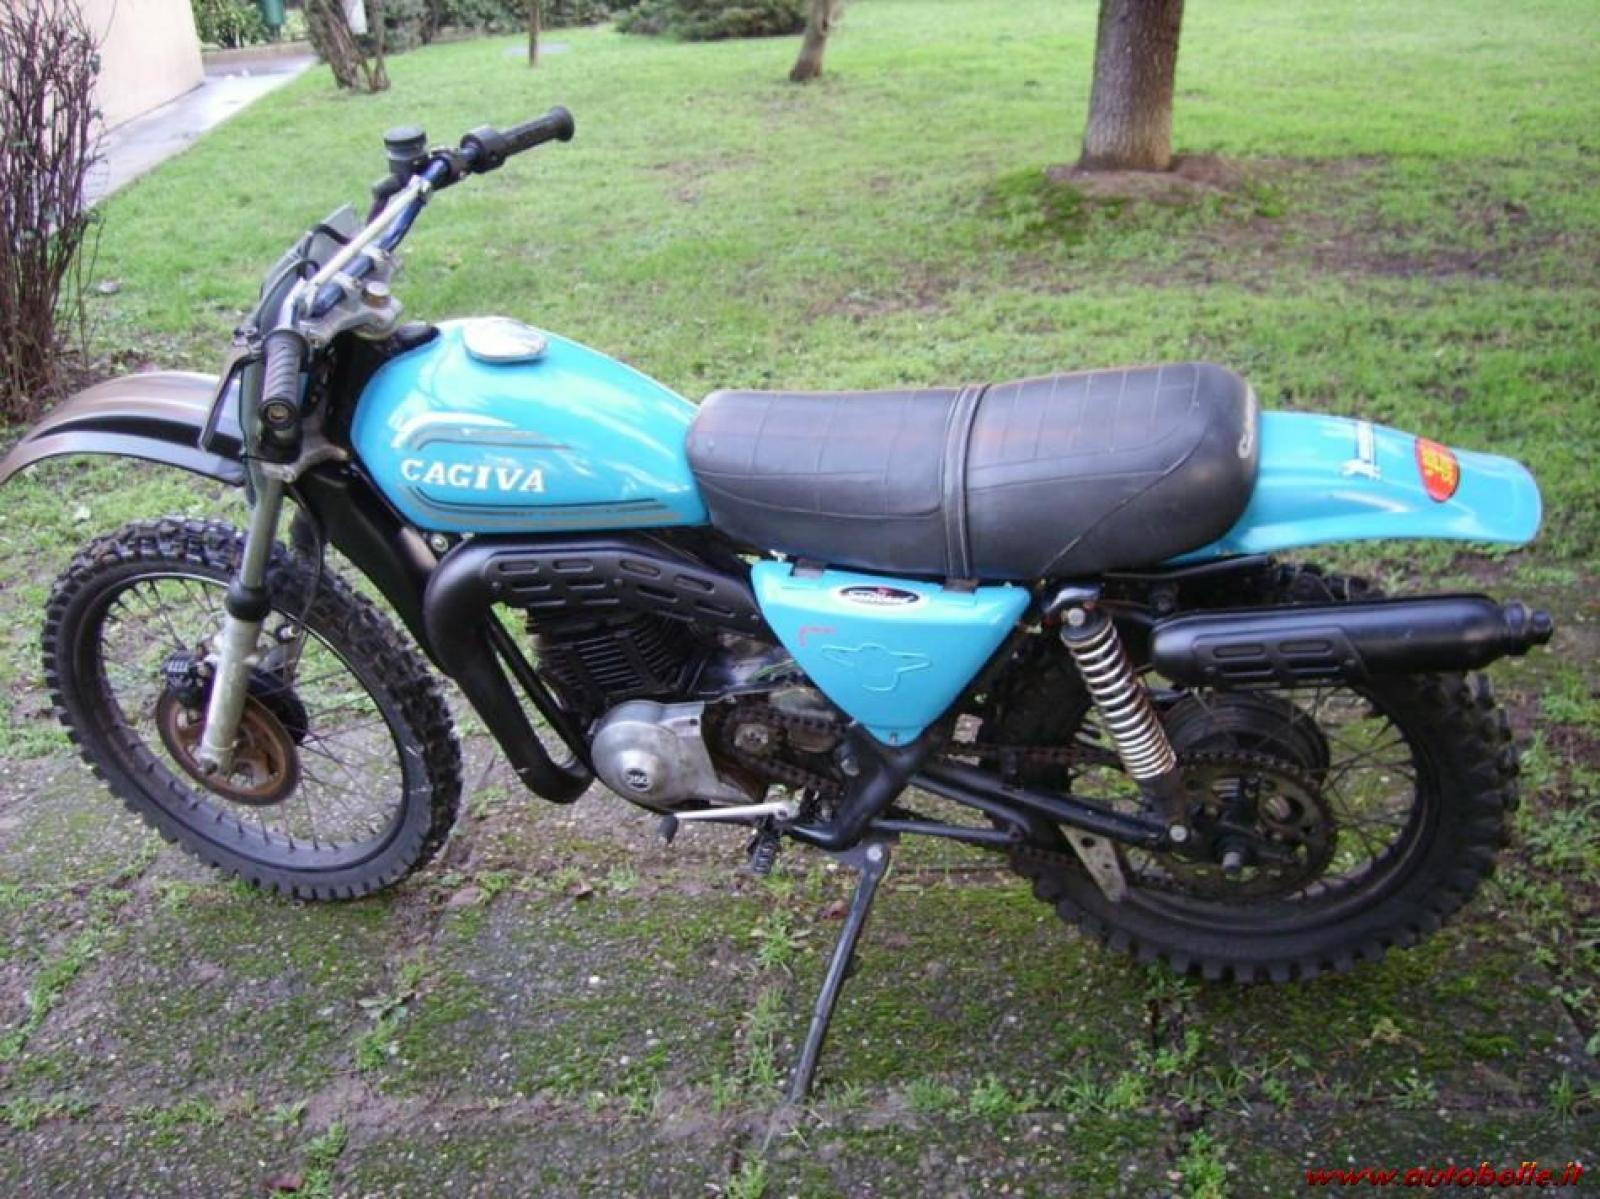 Cagiva SX 250 1983 images #67992